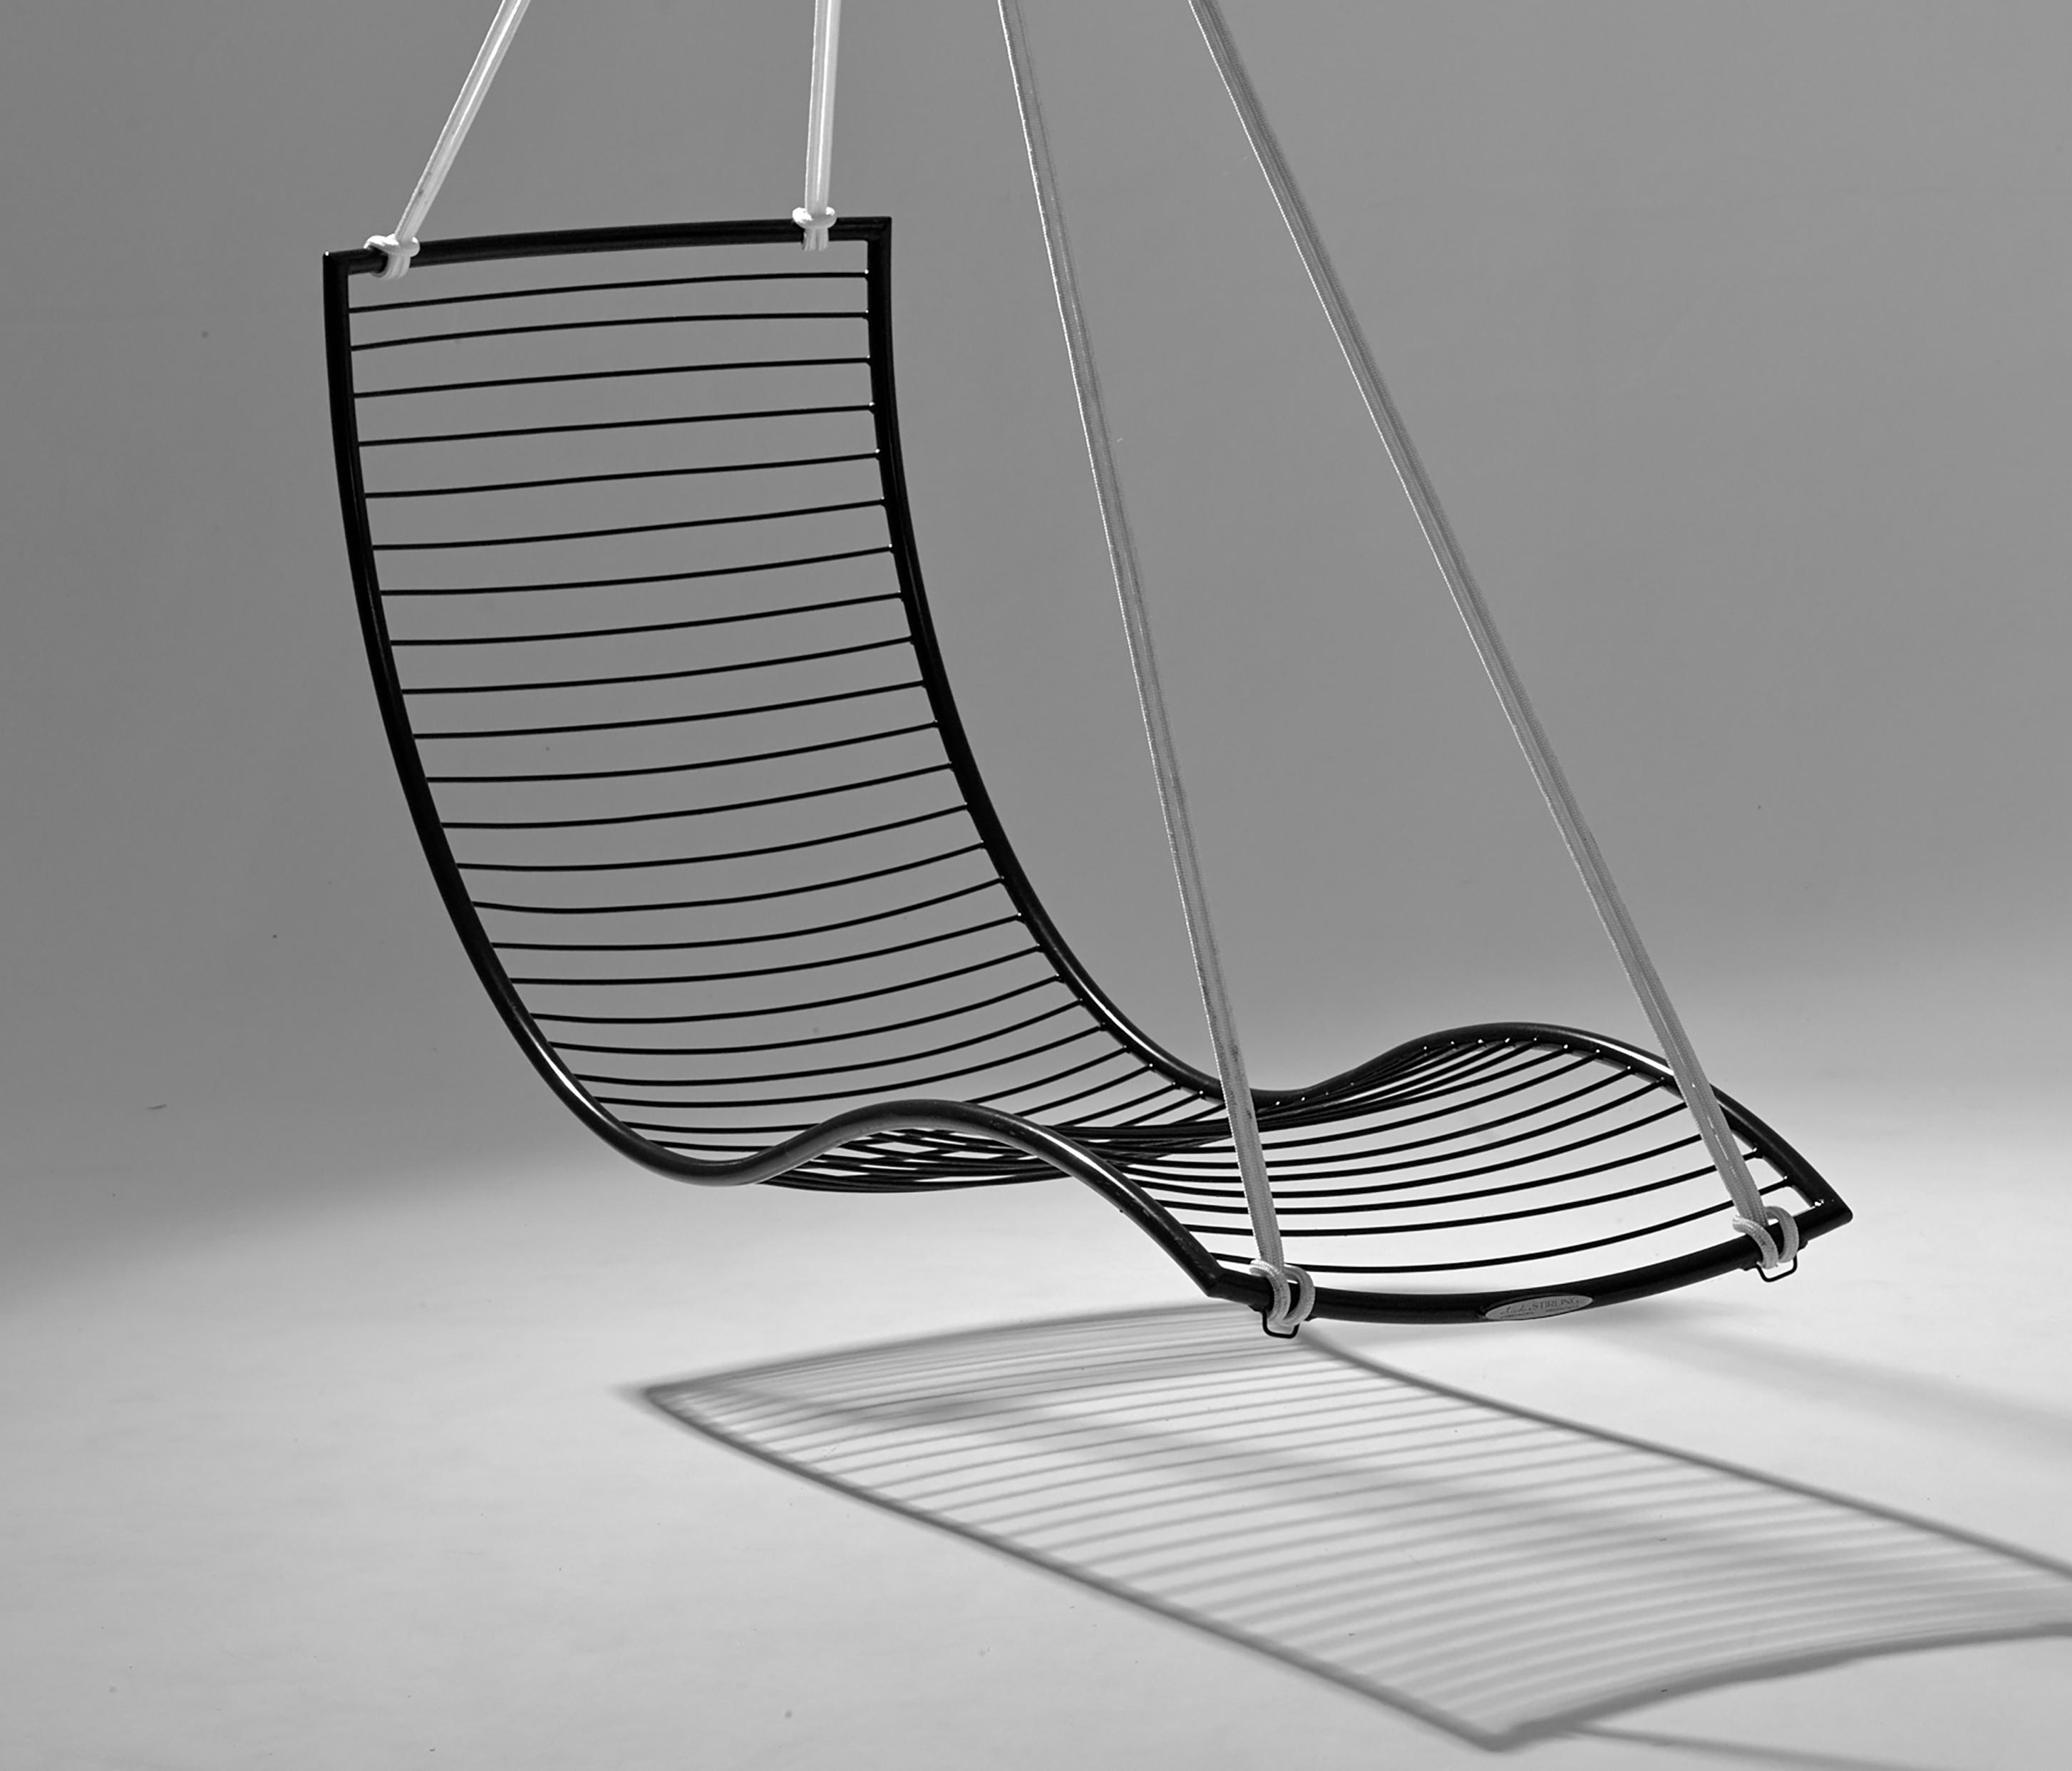 Curve Hanging Swing Chair By Studio Stirling | Swings ...